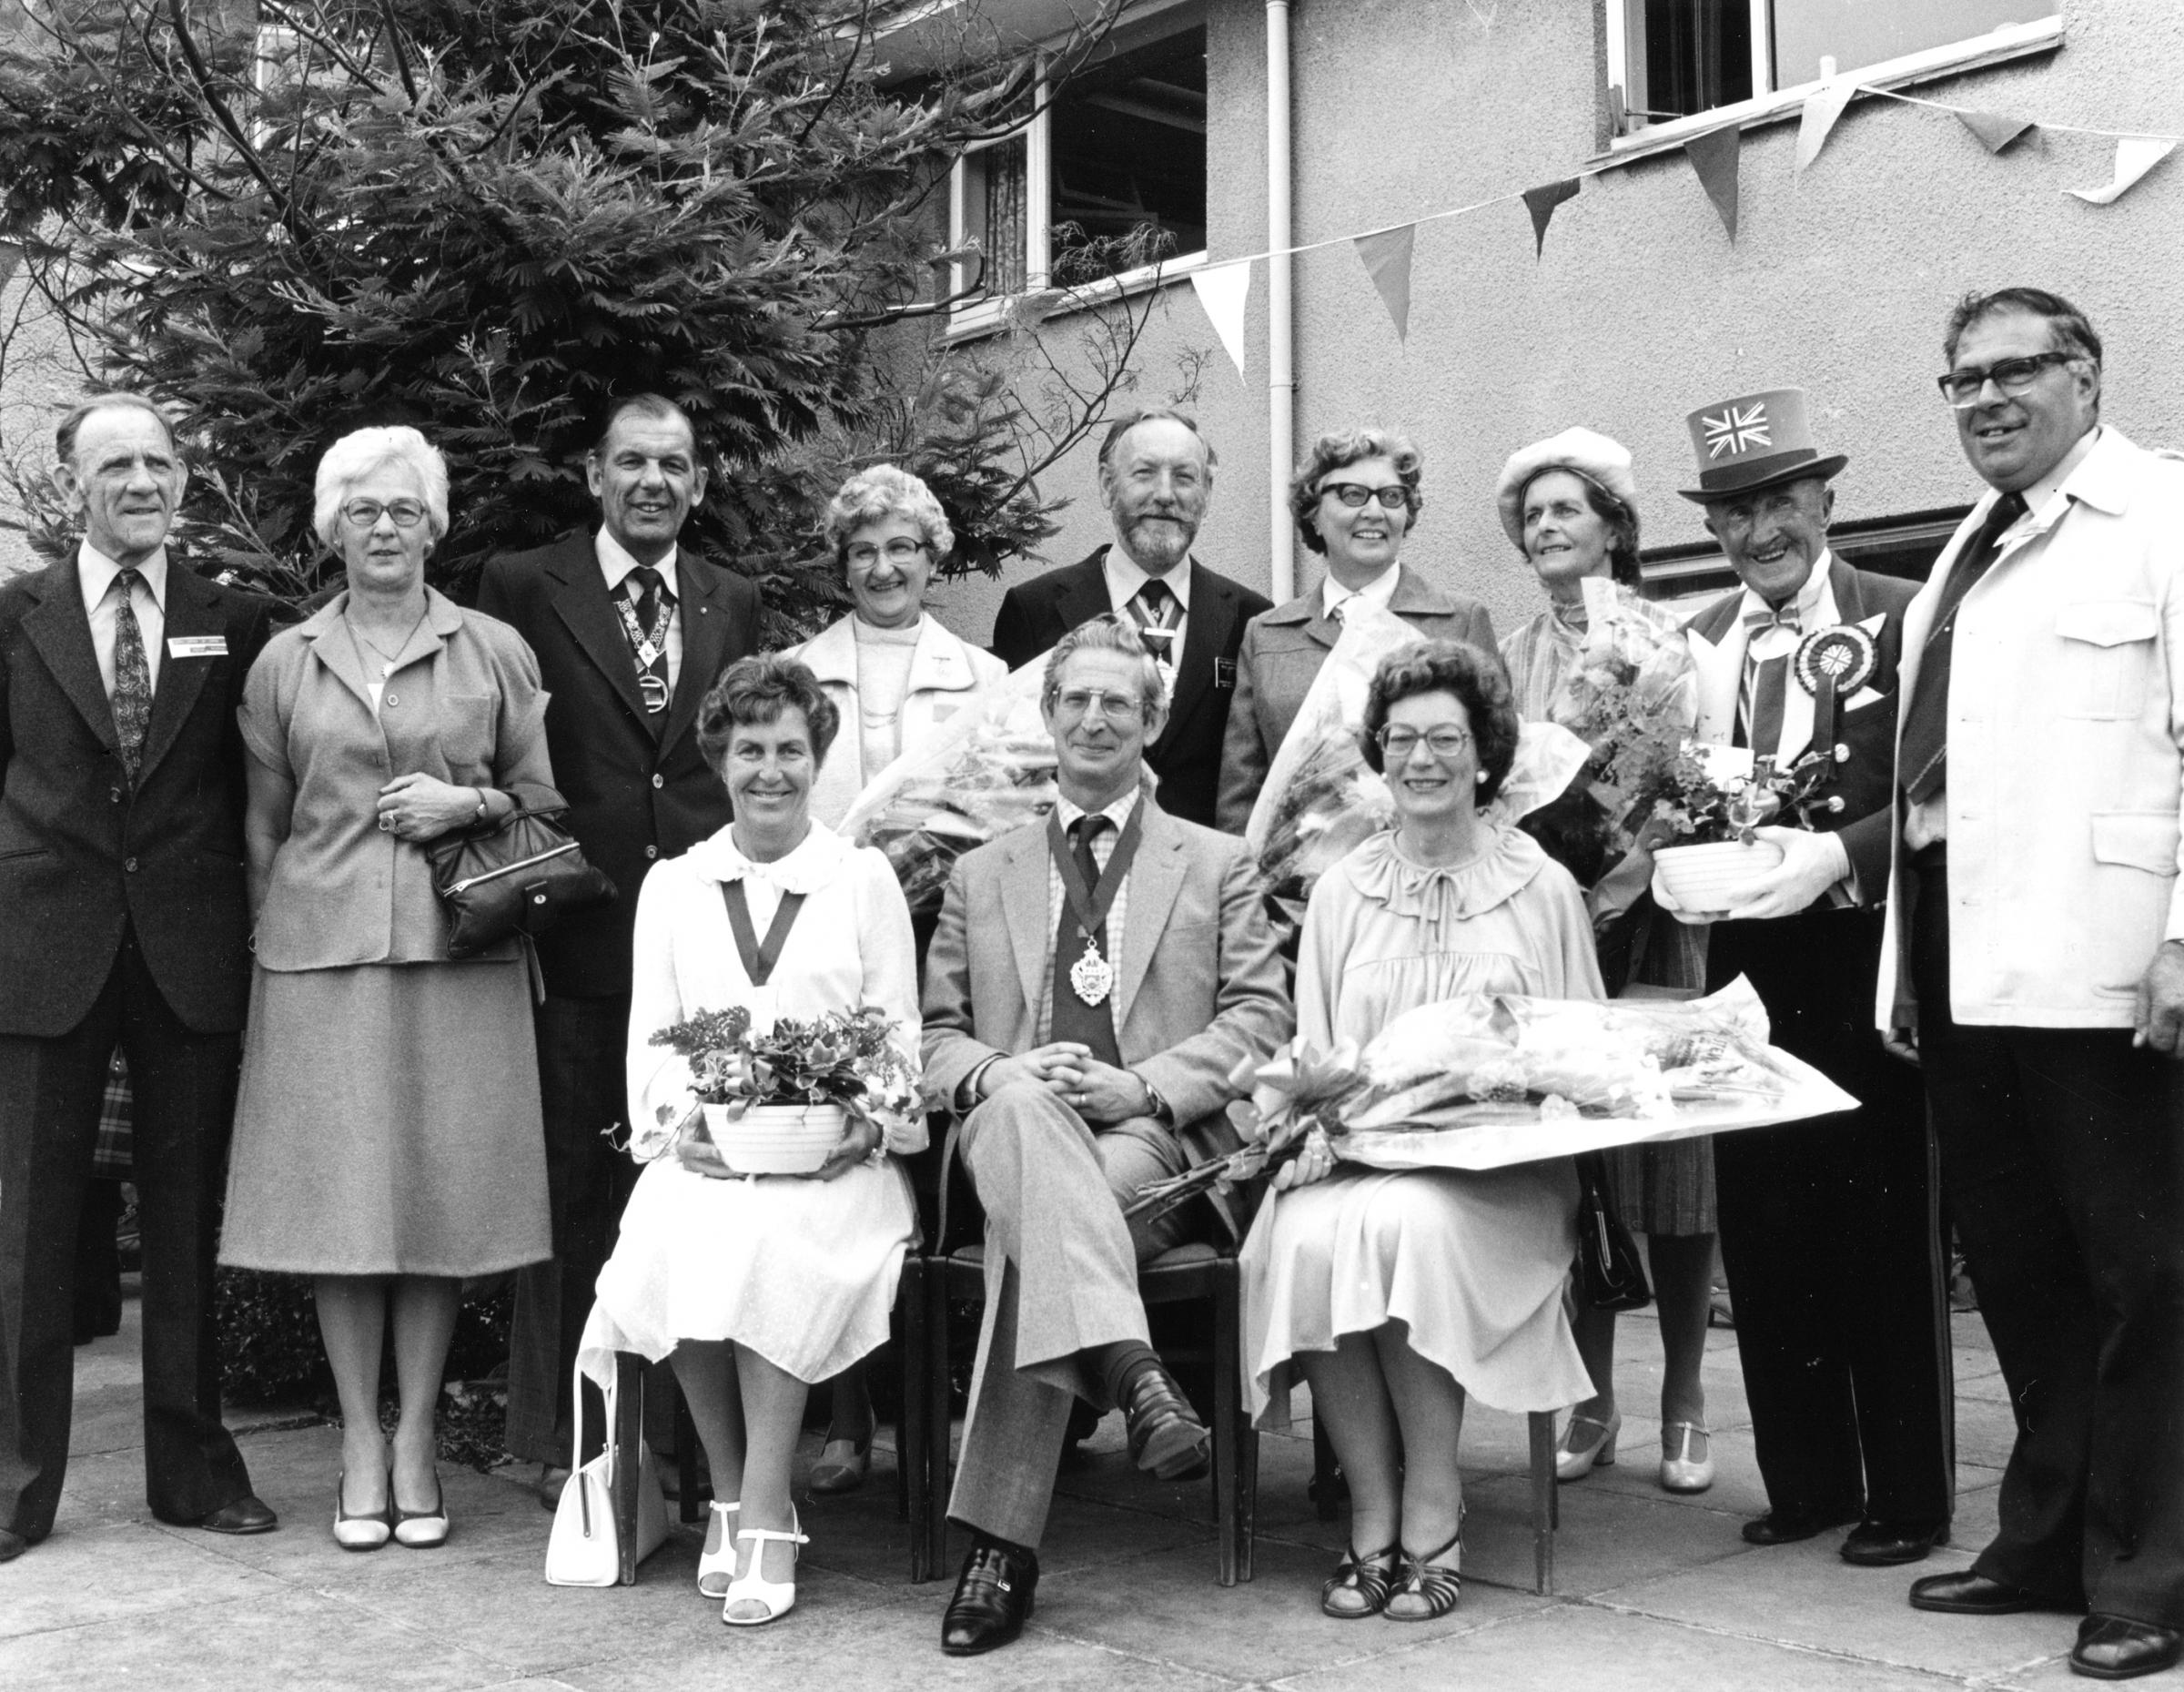 Michael Rose photograph taken at the grand fete of the old people's home Dorset House, Hamworthy, Poole, in 1979